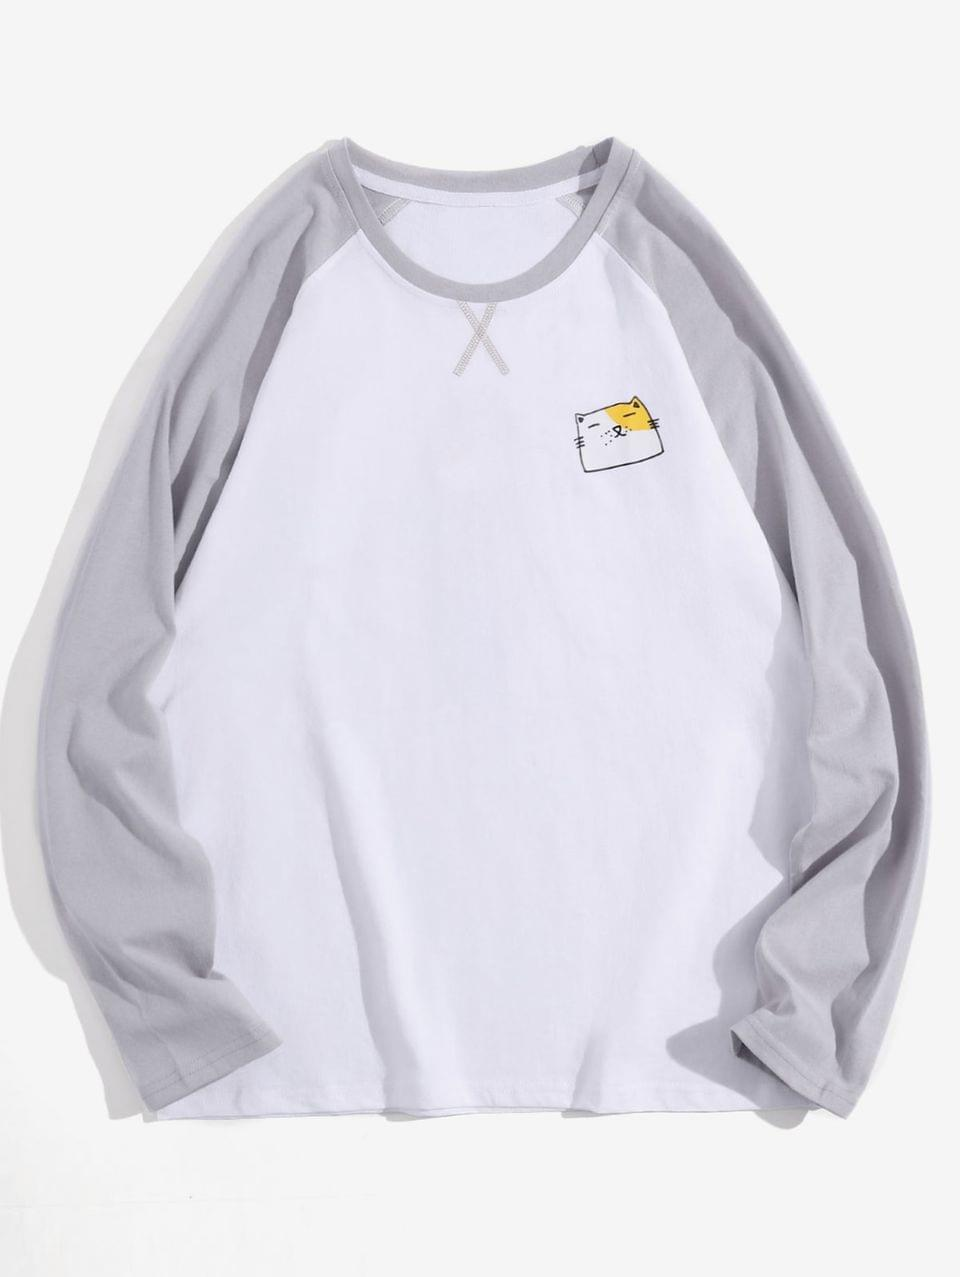 Men's Creative Animal Graphic Casual Long Sleeve T Shirt - White L